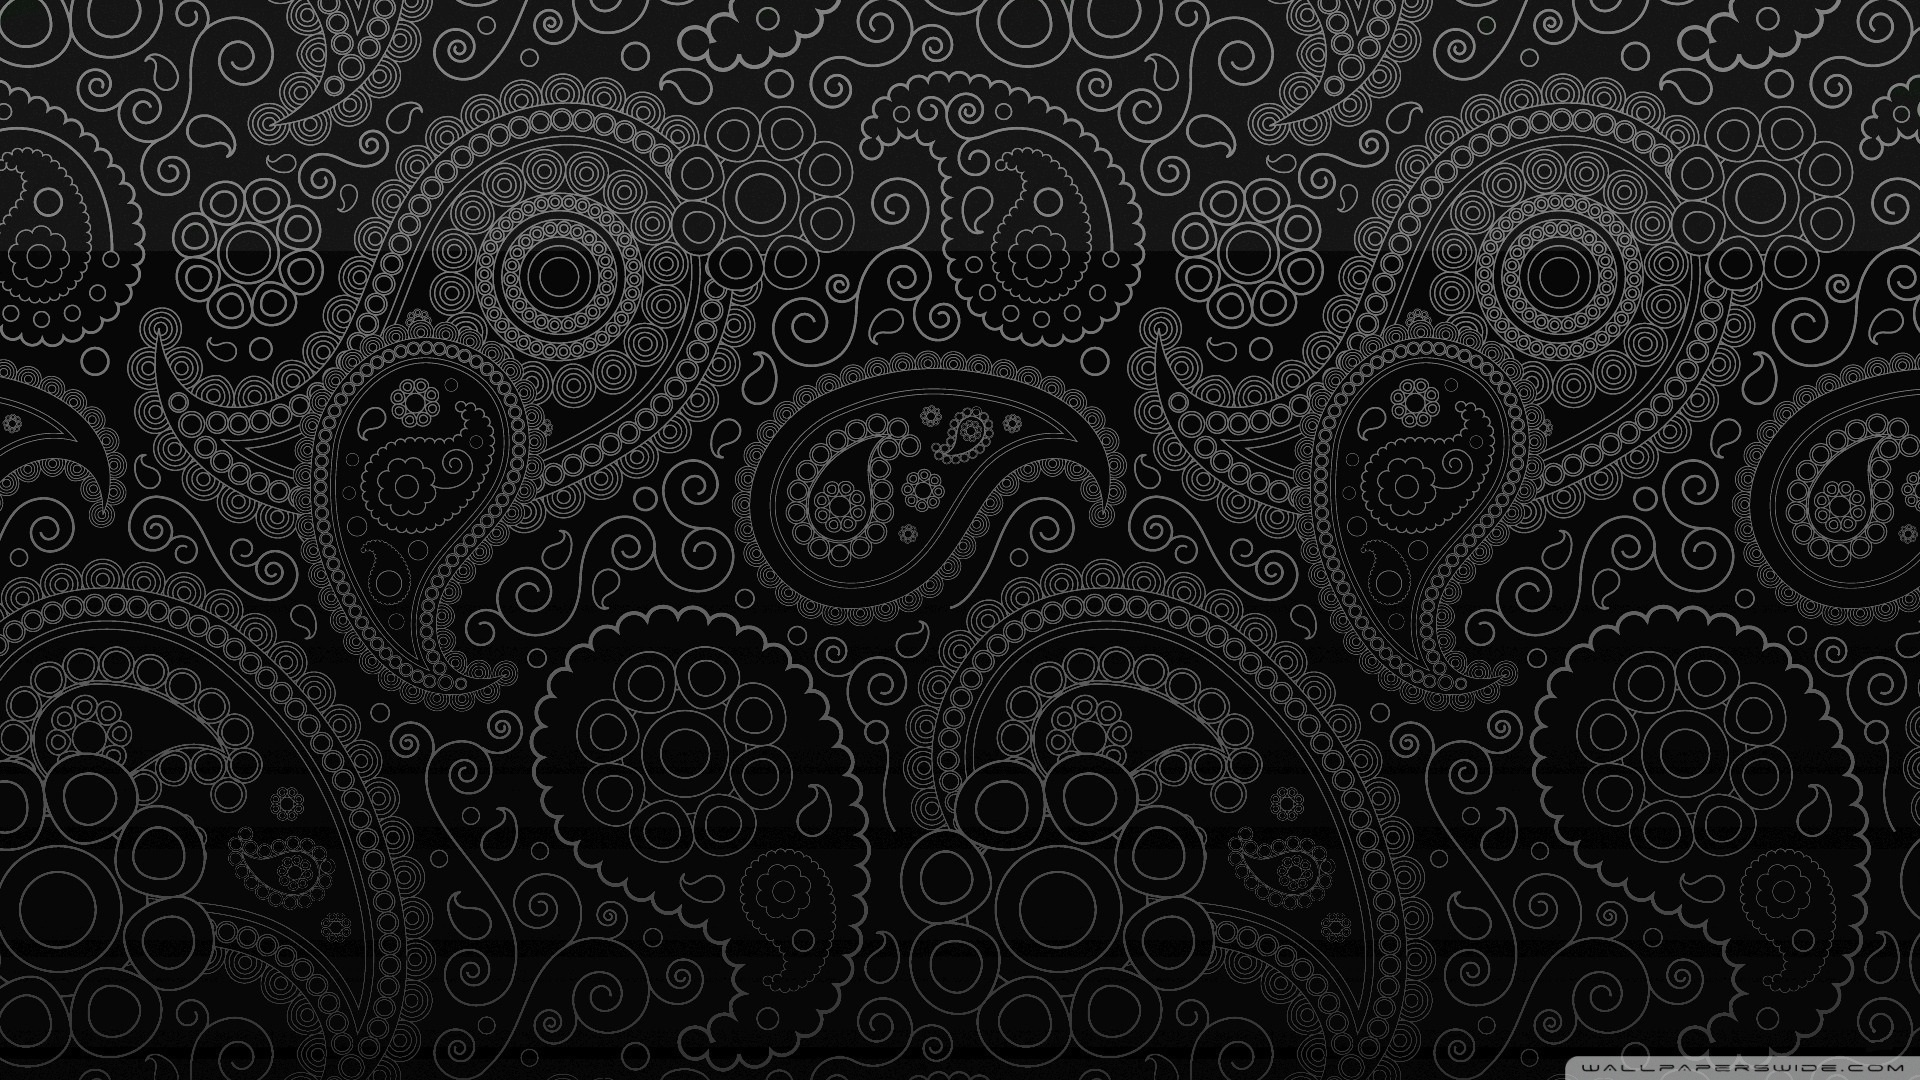 Black And White Design        4K HD Desktop Wallpaper for 4K Ultra HD TV     Standard